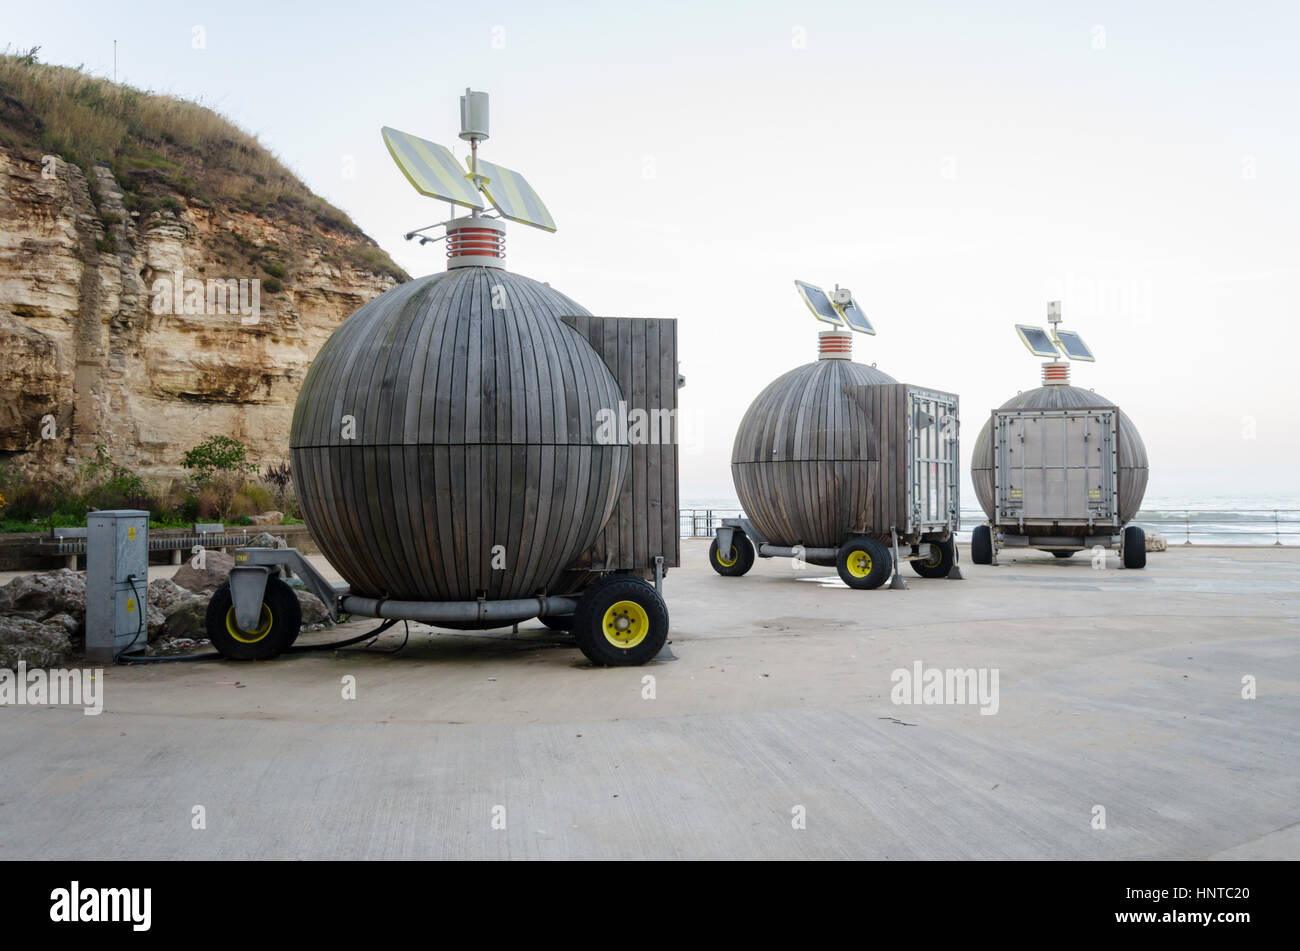 'Roker Pods' (Moveable Multi-use Containers Using Renewable Energy) located at Holey Rock, Roker, Sunderland - Stock Image